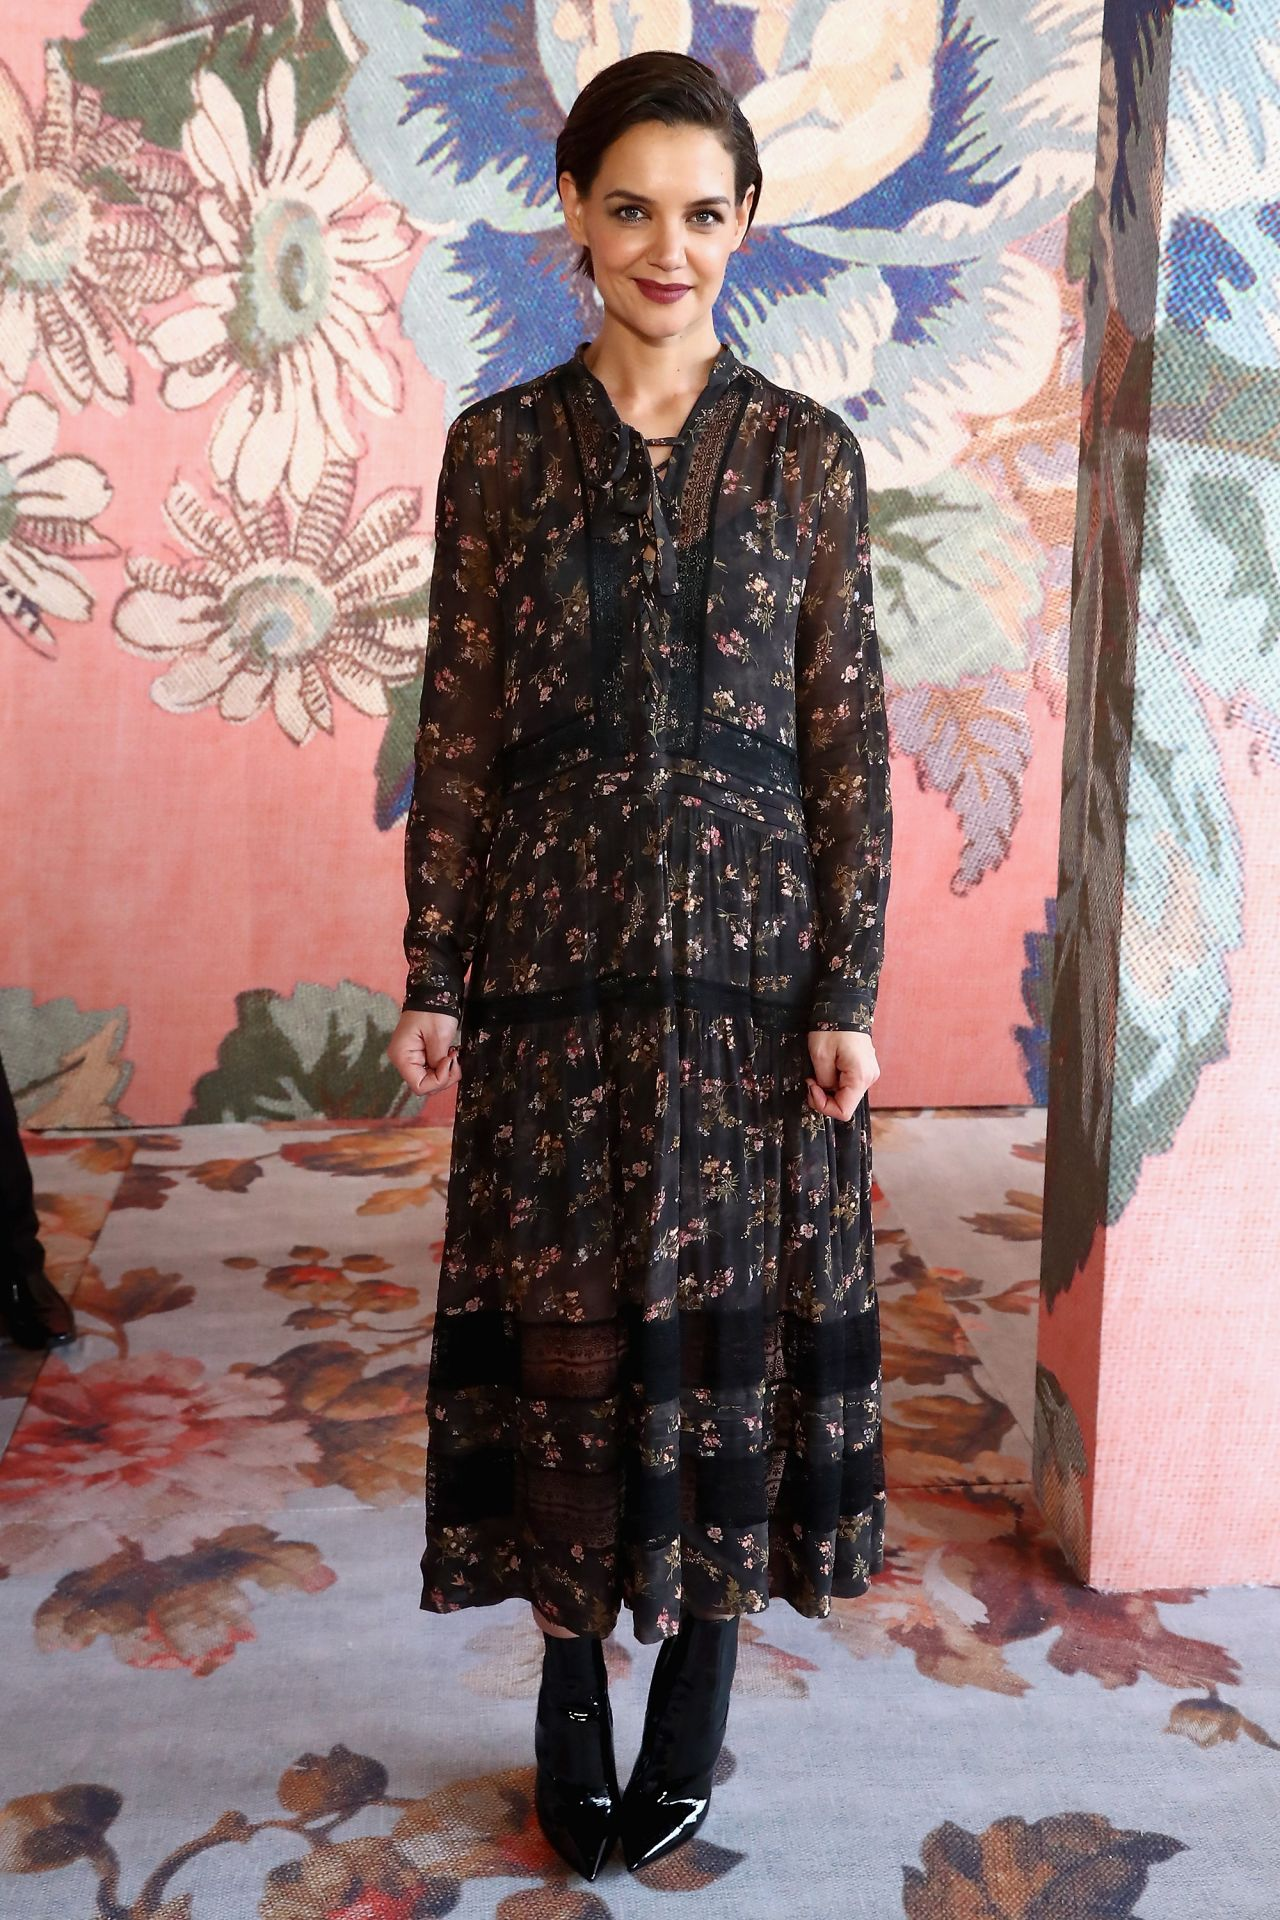 Katie Holmes At Zimmermann Fashion Show In Nyc 02 12 2018